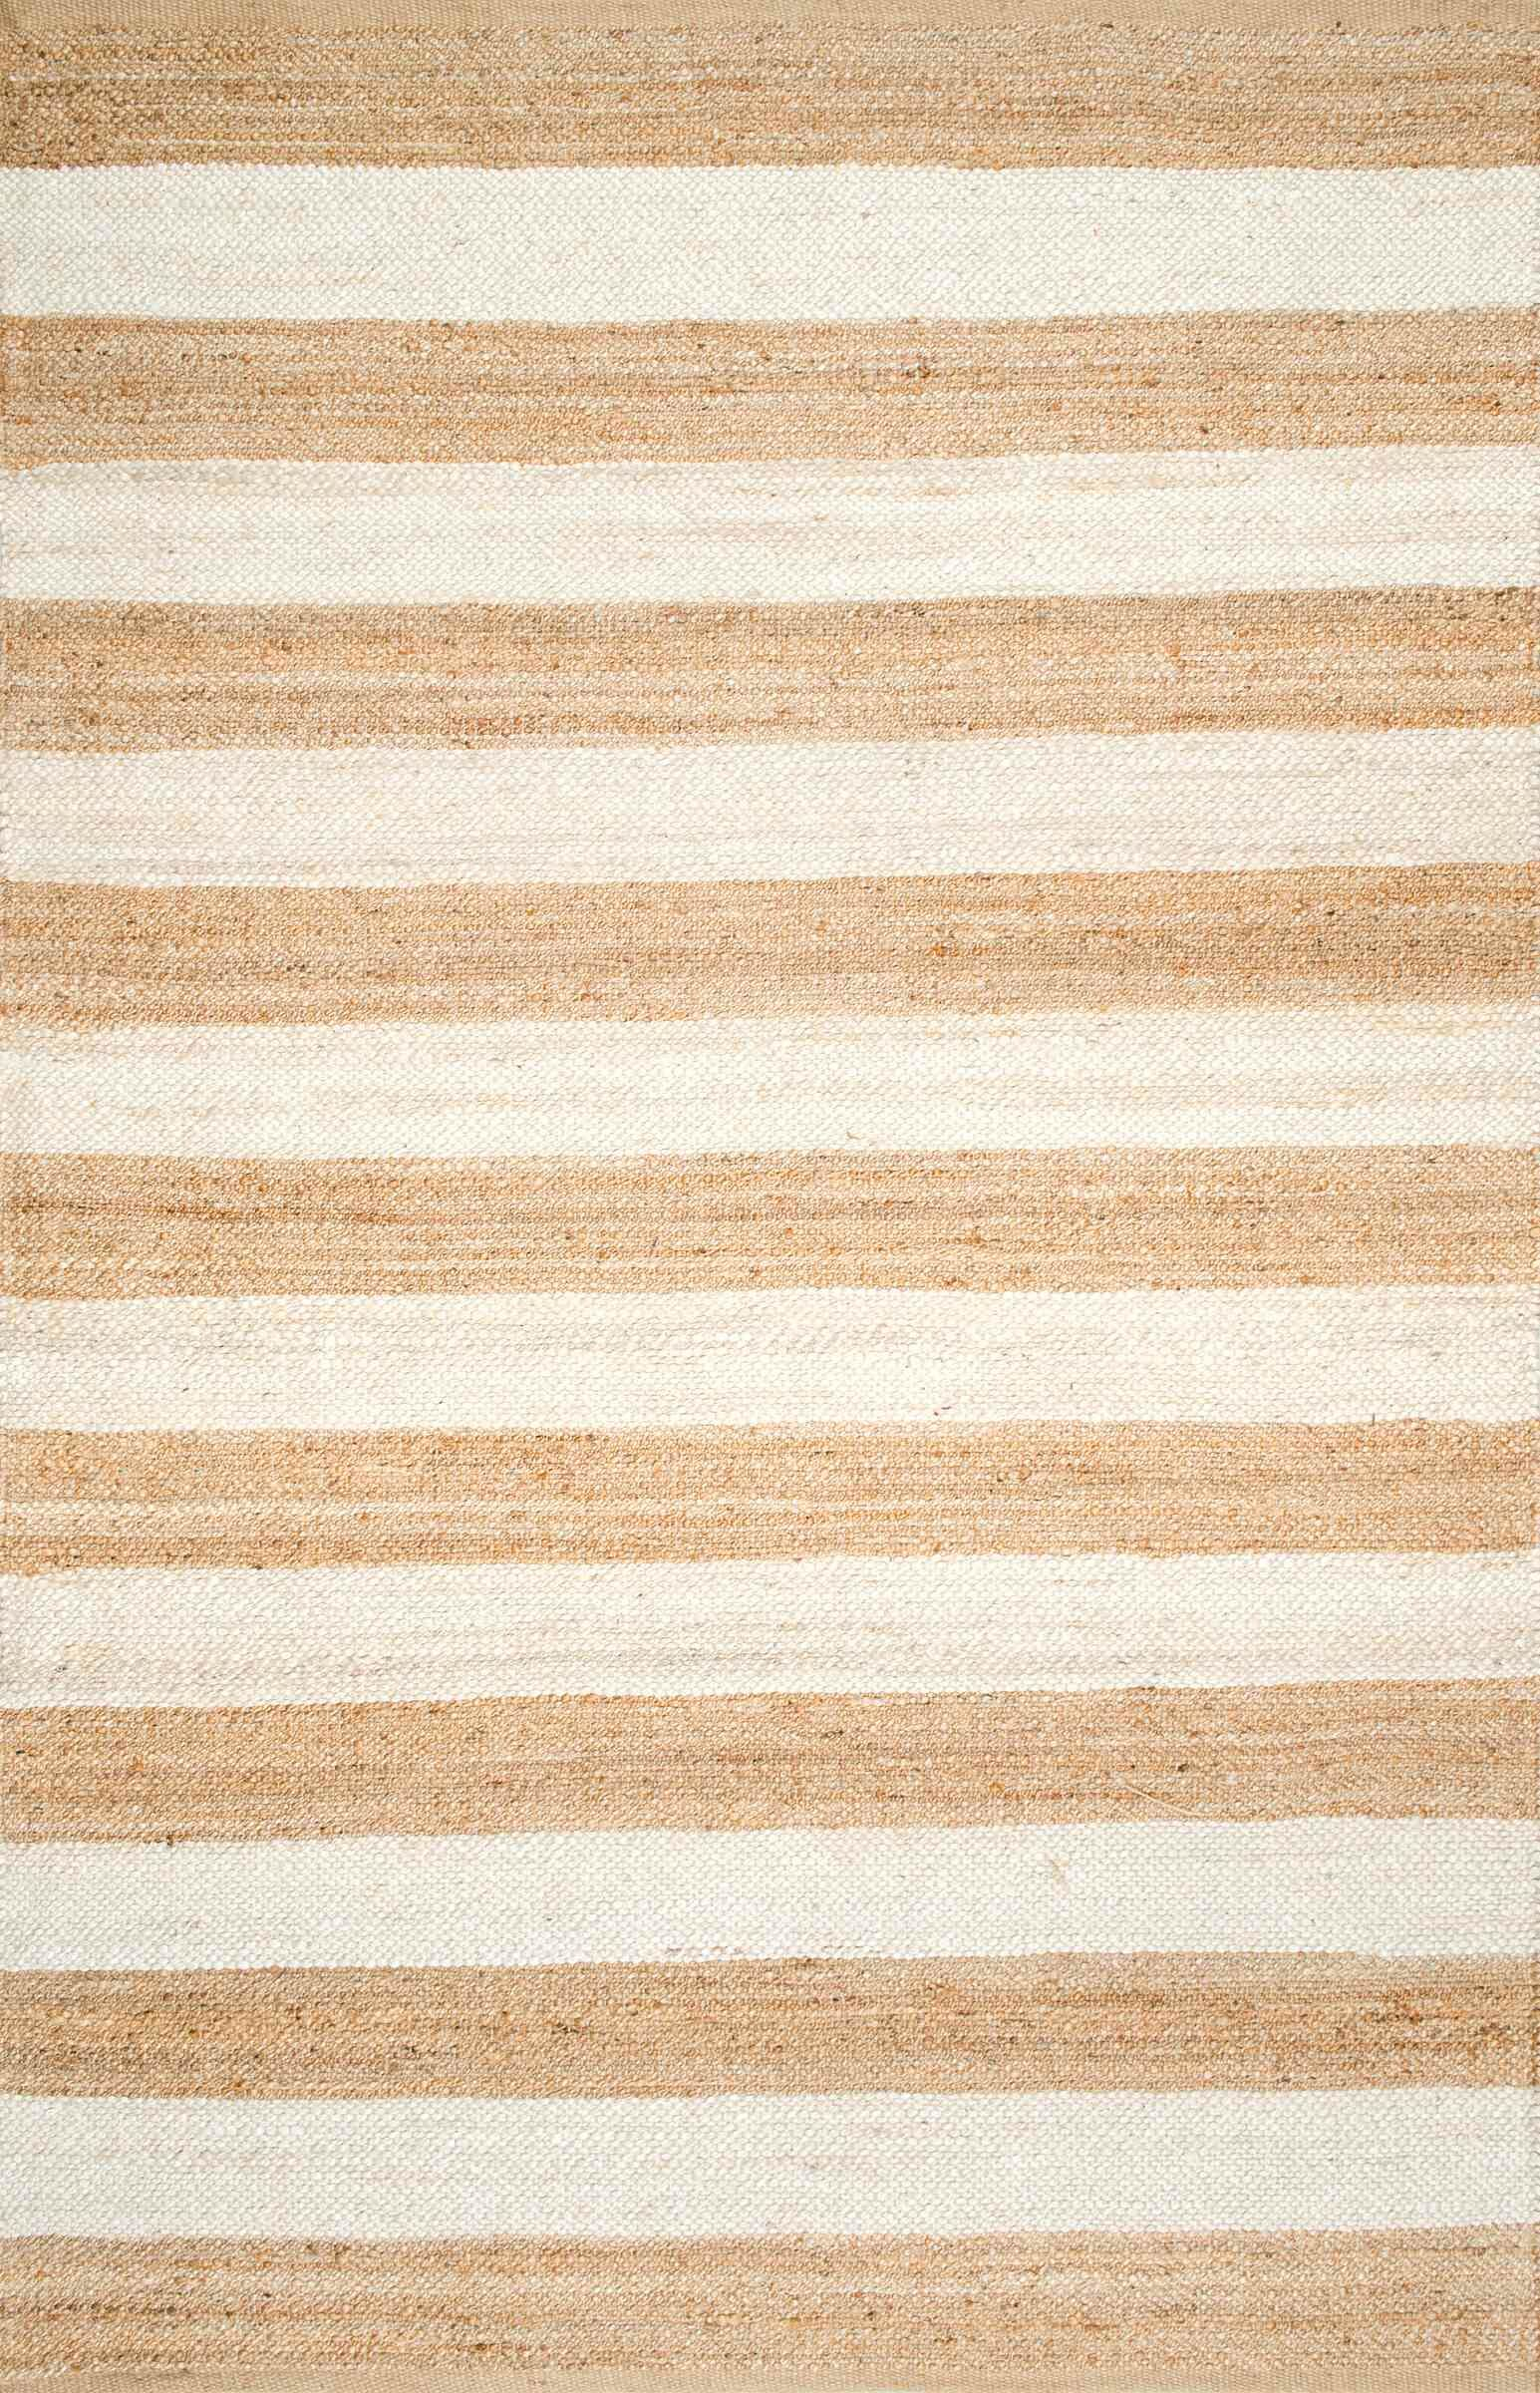 Stockton Springs Beige/Bleached Area Rug Rug Size: Rectangle 7'6